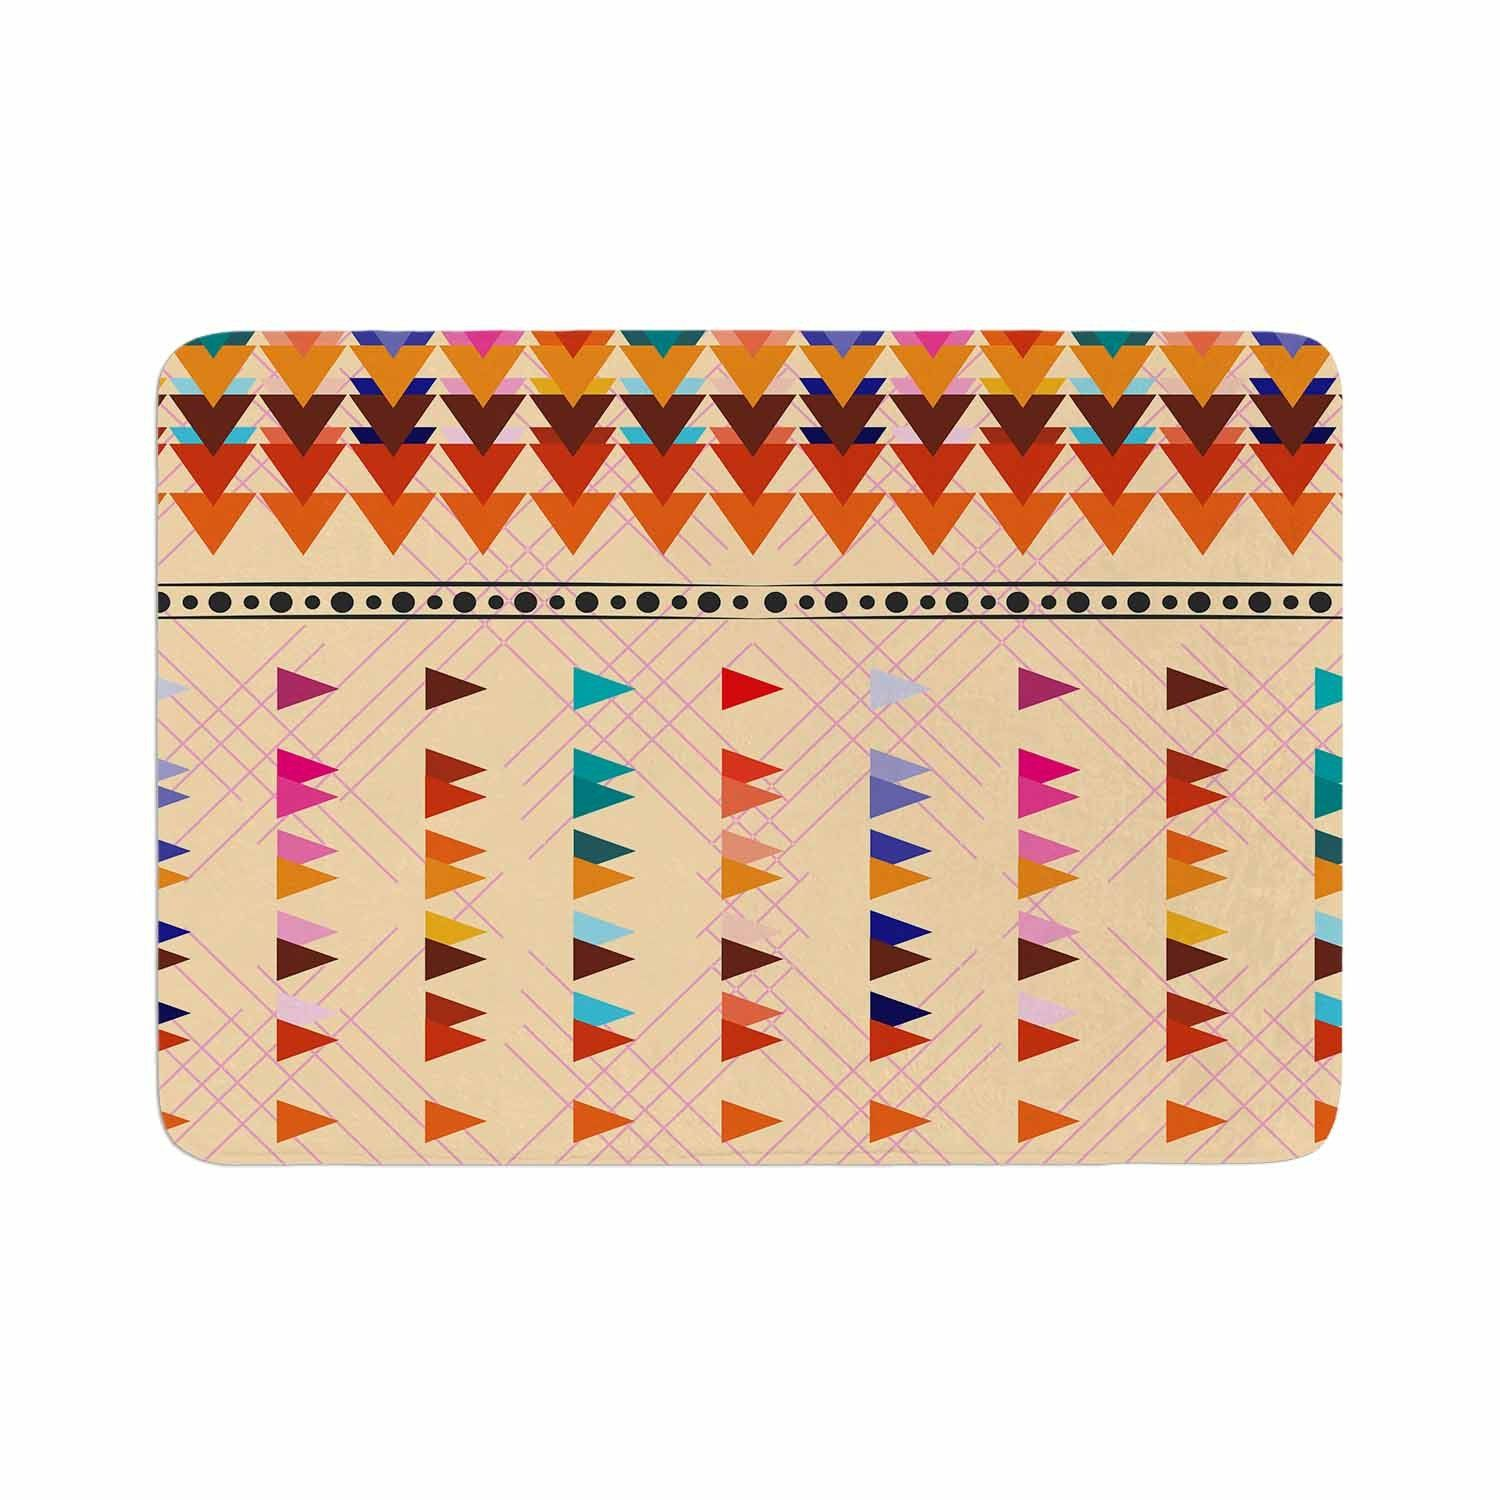 Famenxt Bohemian Triangle Pattern Orange Pastel Illustration